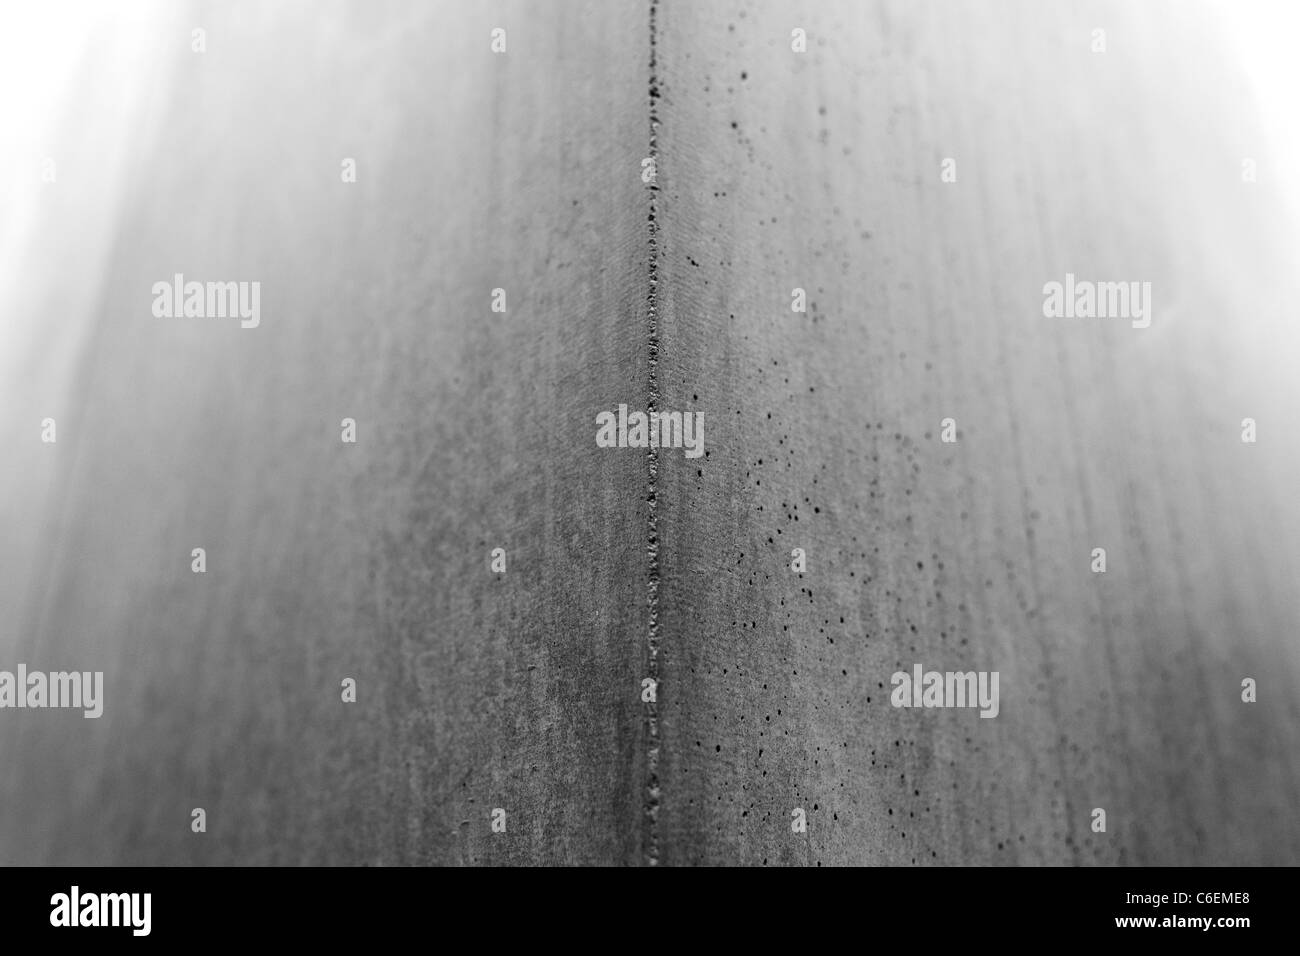 Detail of the Holocaust Memorial. Berlin, Germany - Stock Image